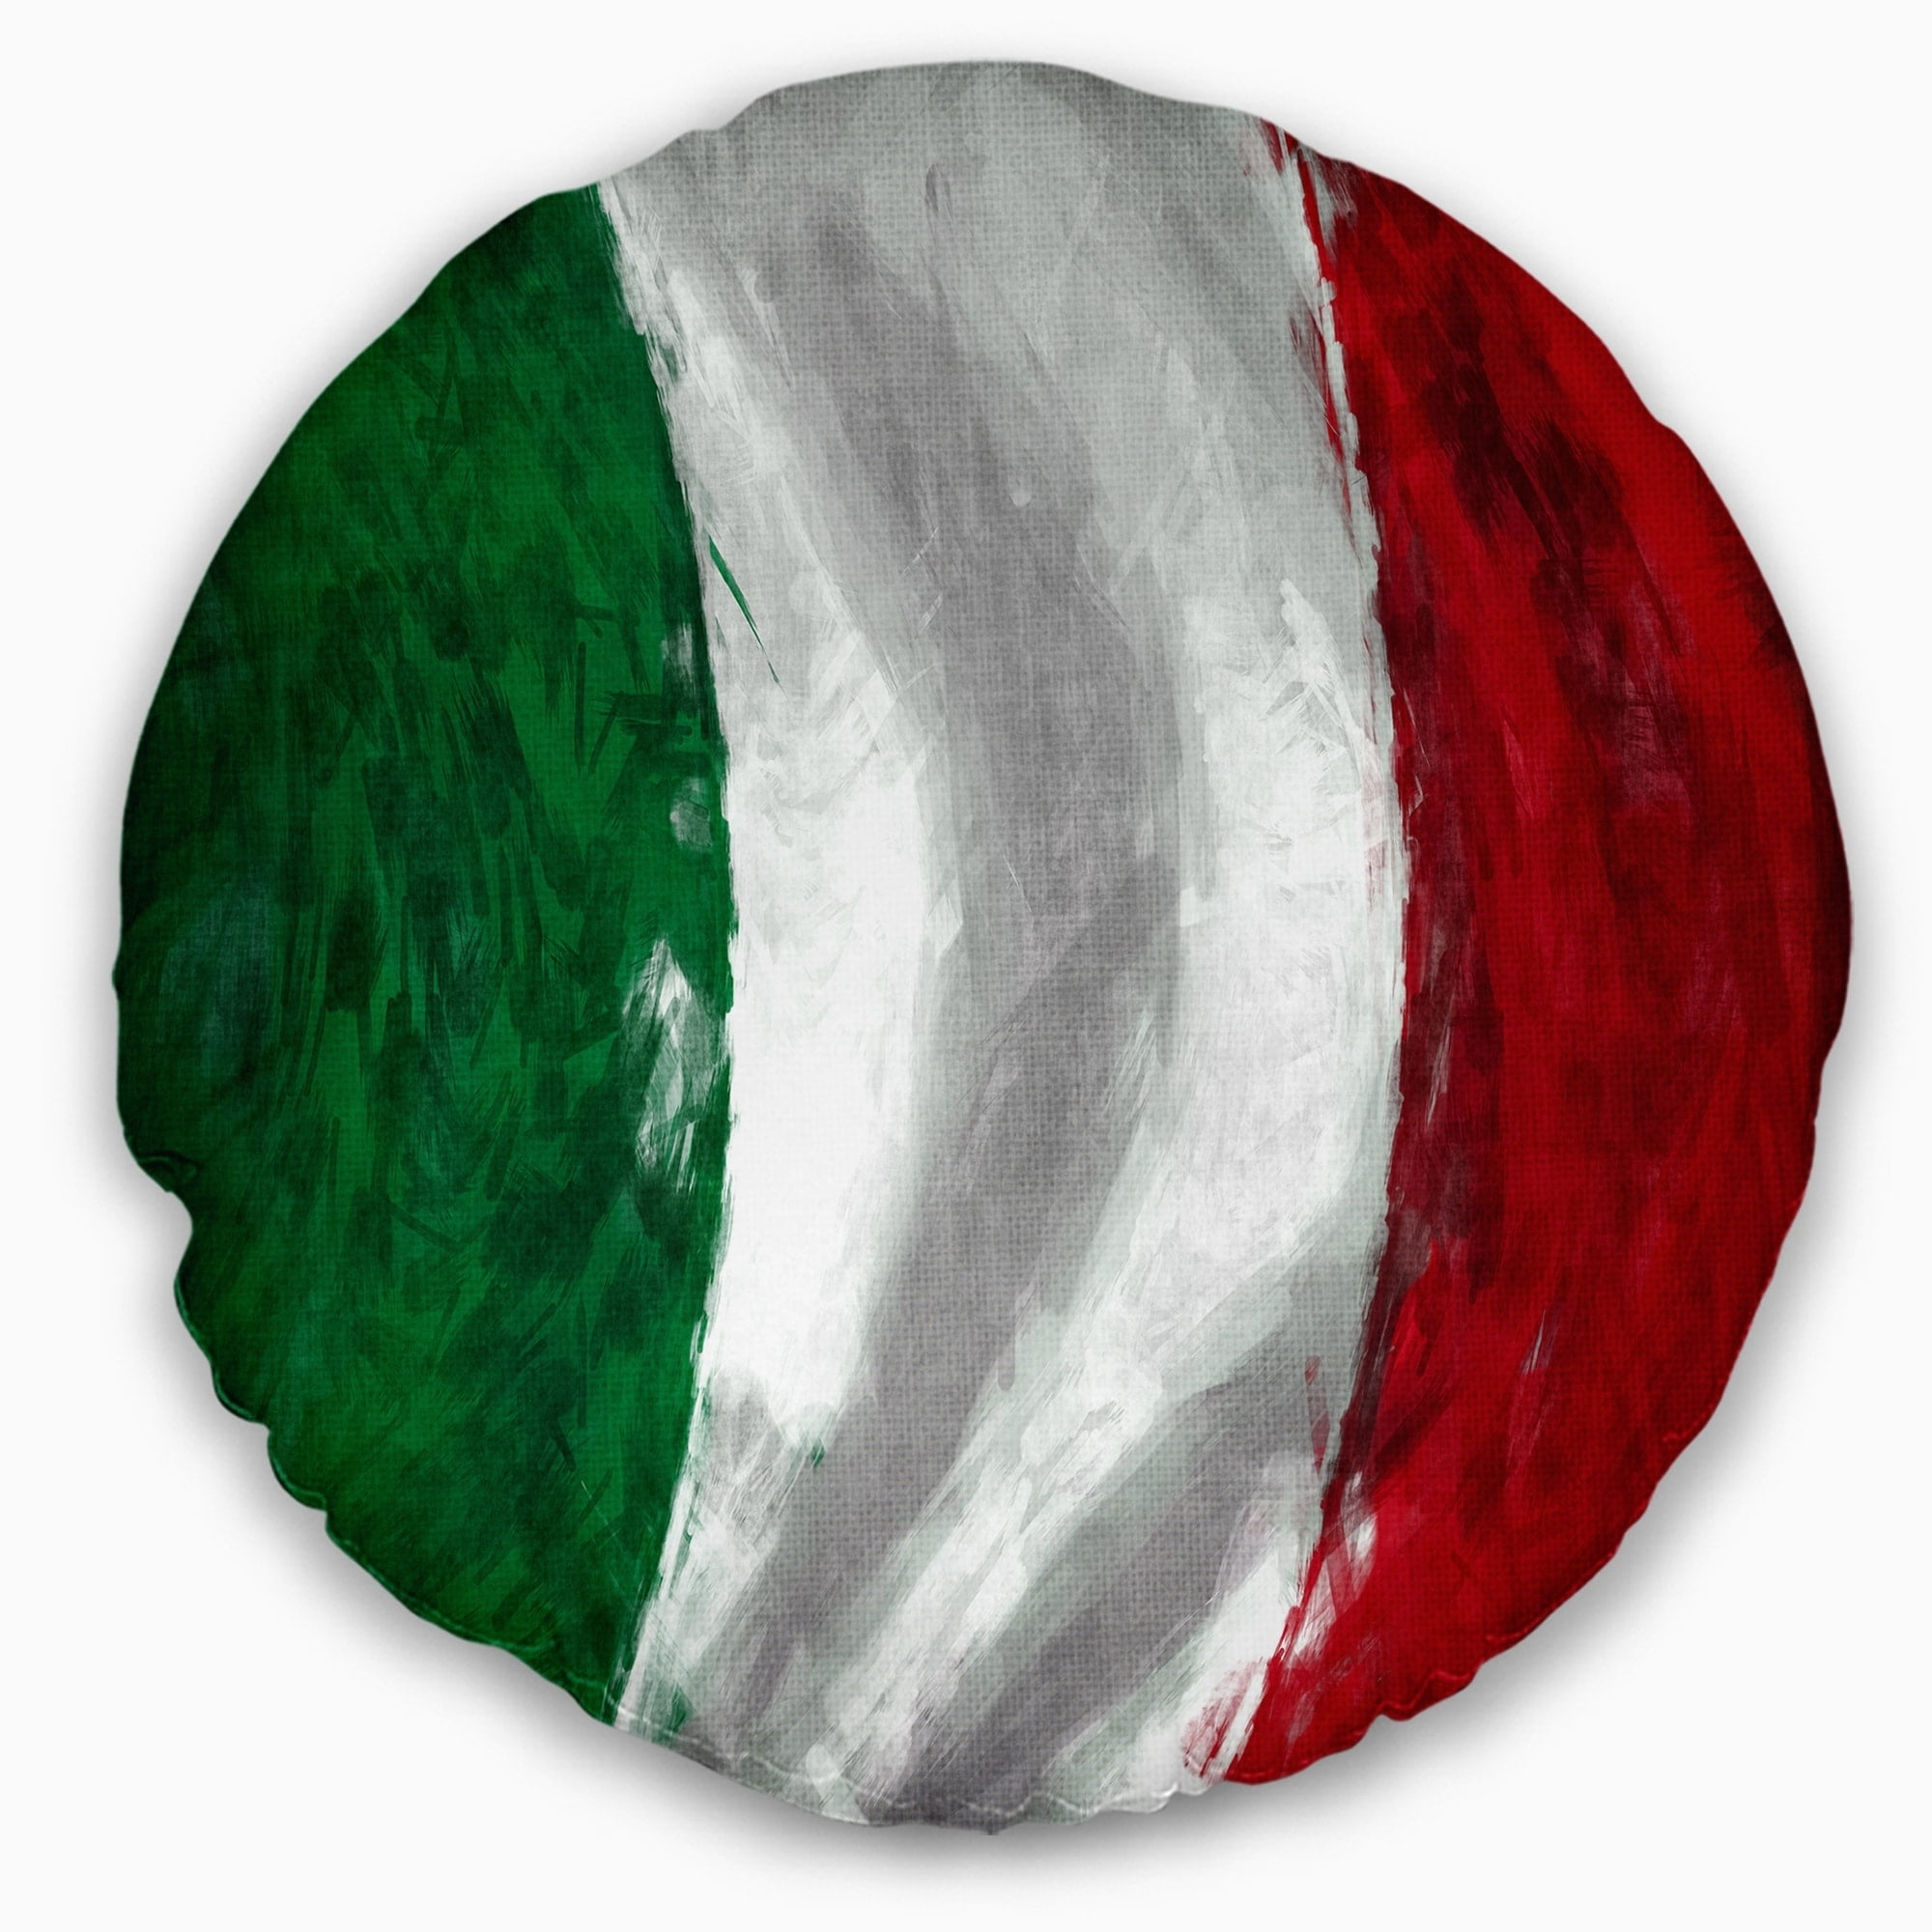 Sofa Throw Pillow 20 Designart Cu6726 20 20 C Italy Flag Contemporary Round Cushion Cover For Living Room Bedding Decorative Pillows Inserts Covers